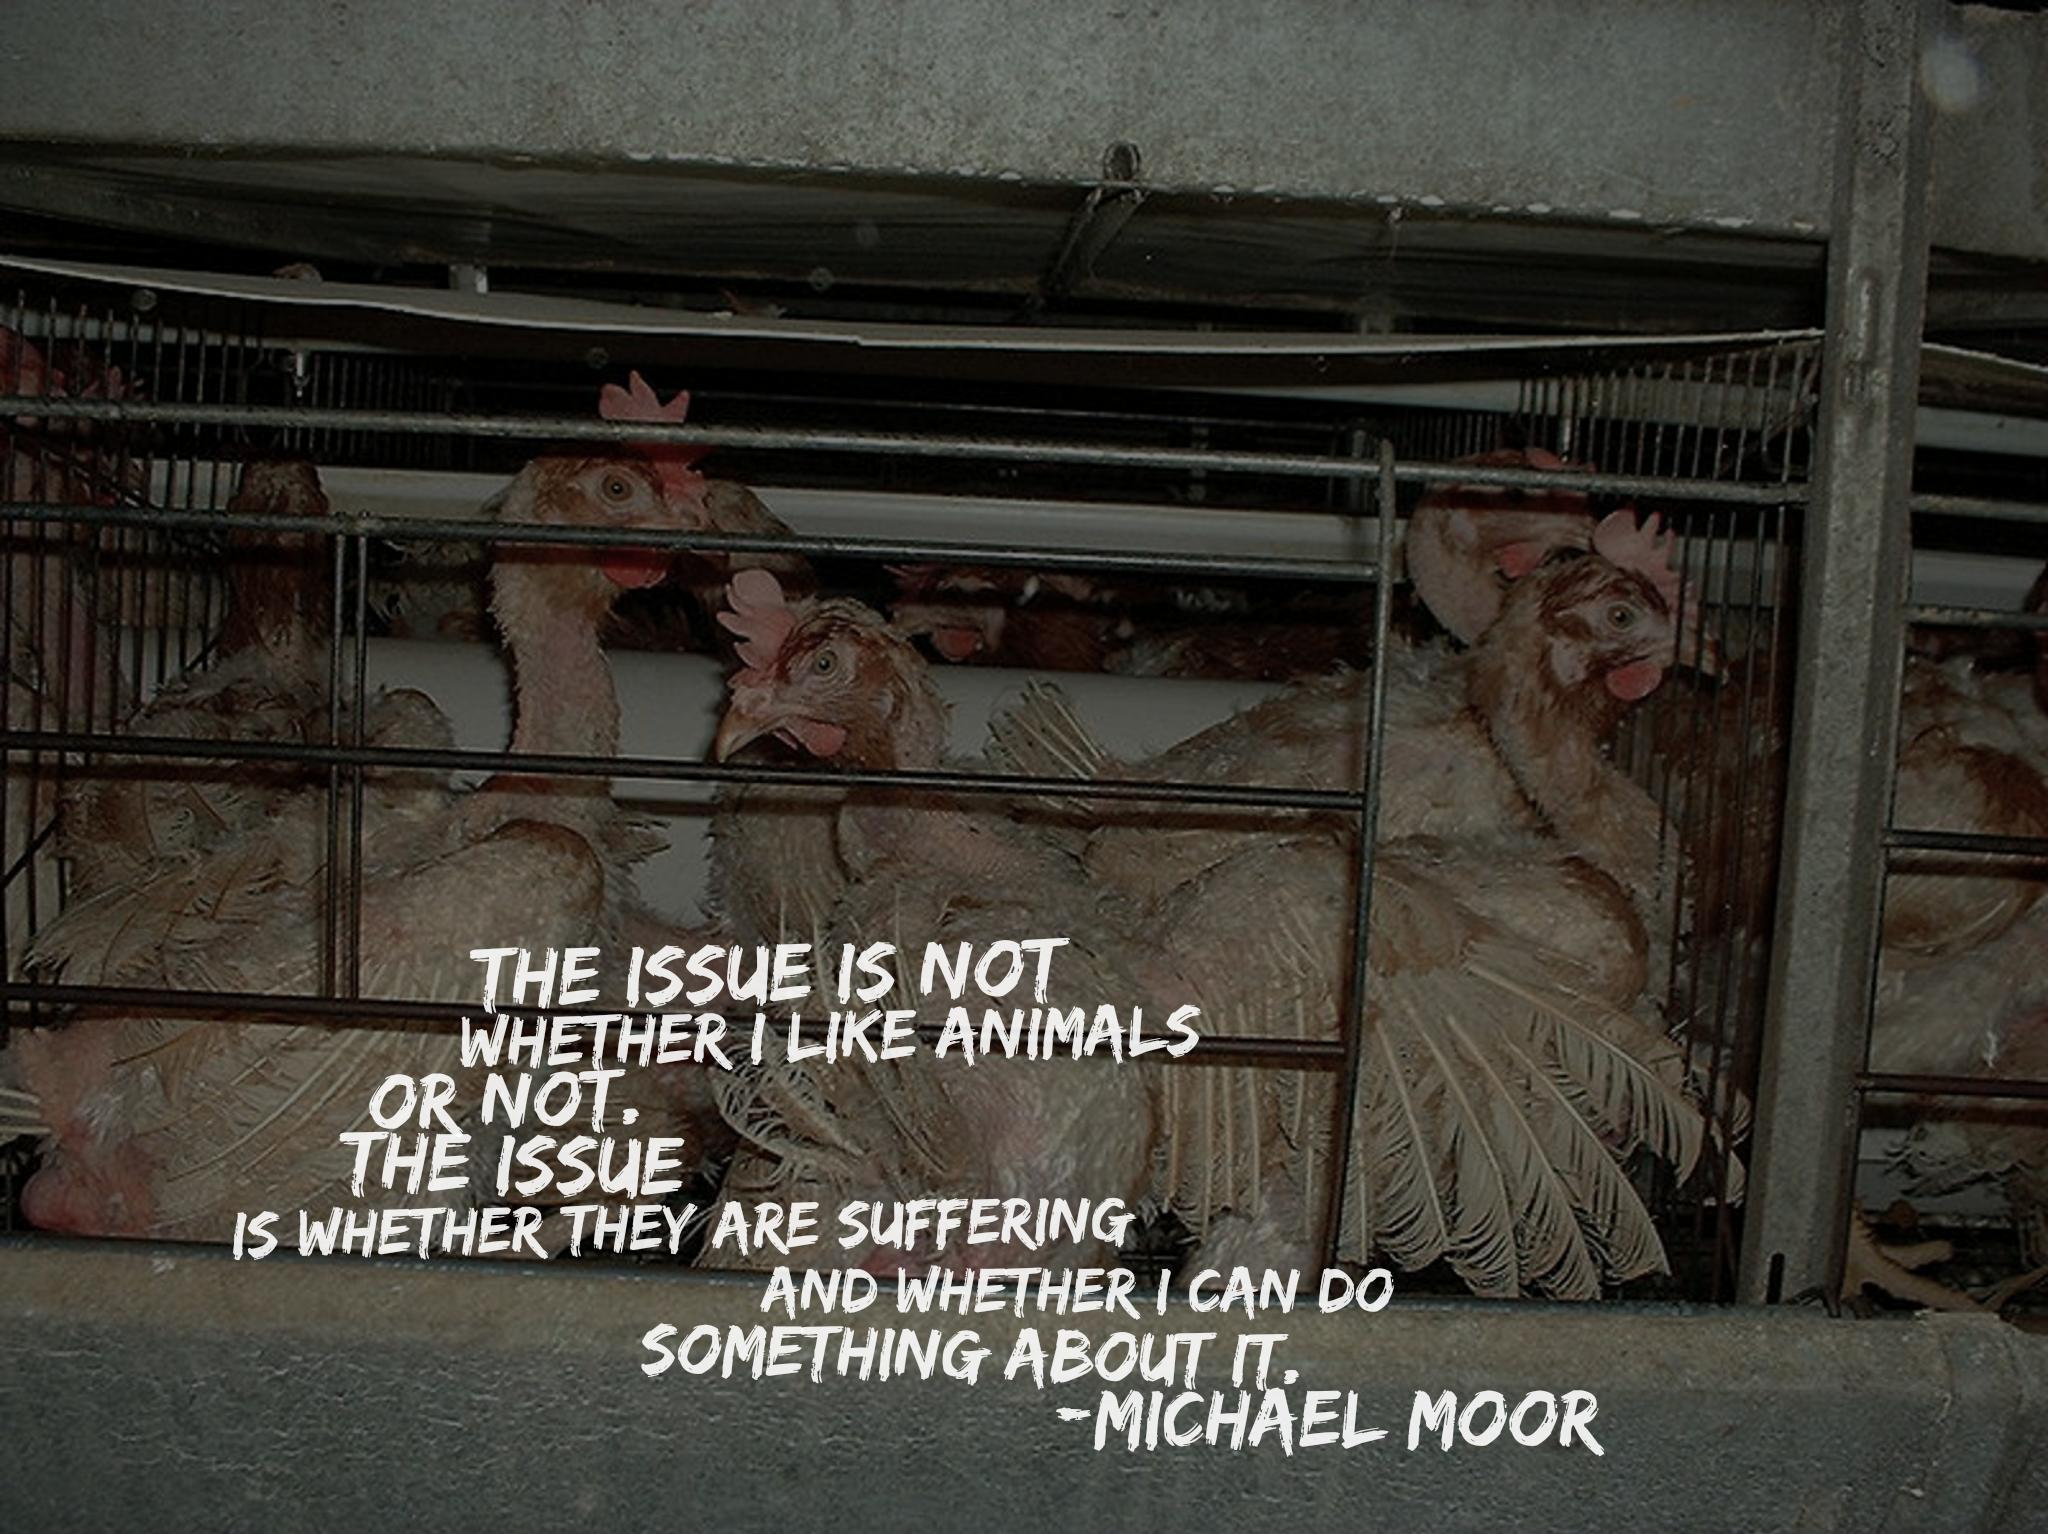 """The issue is not whether I like animals or not. The issue is whether they are suffering and whether I can do something about it."" -Michael Moor [2048×1534] [OC]"